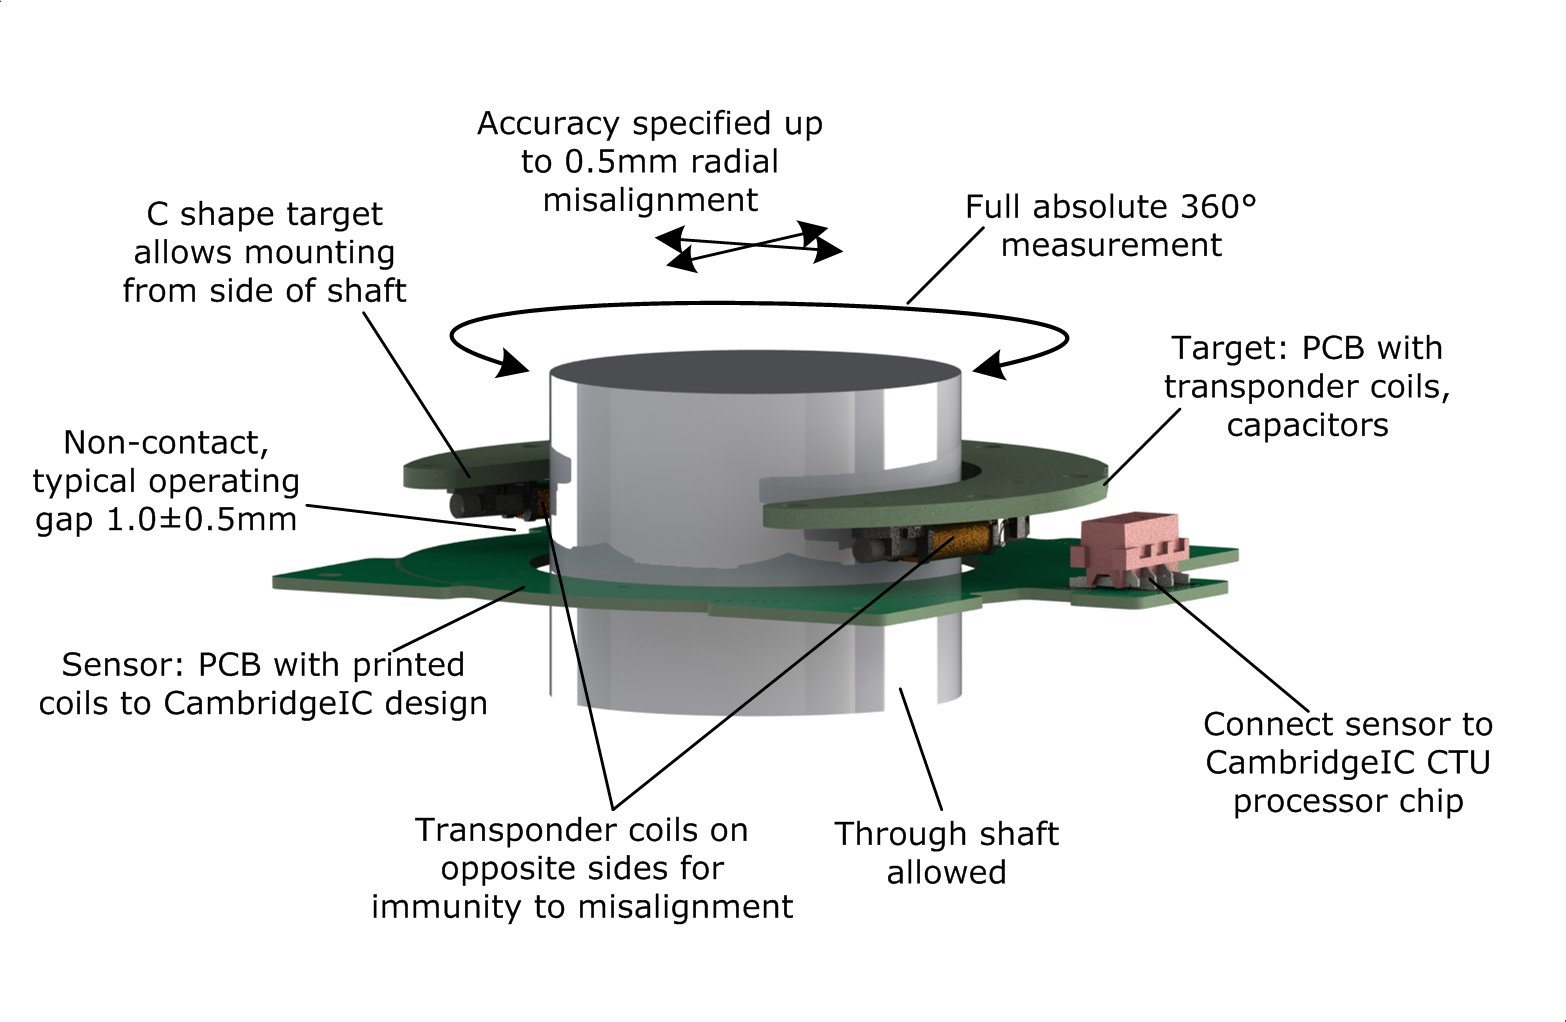 55mm rotary sensor alignment with target